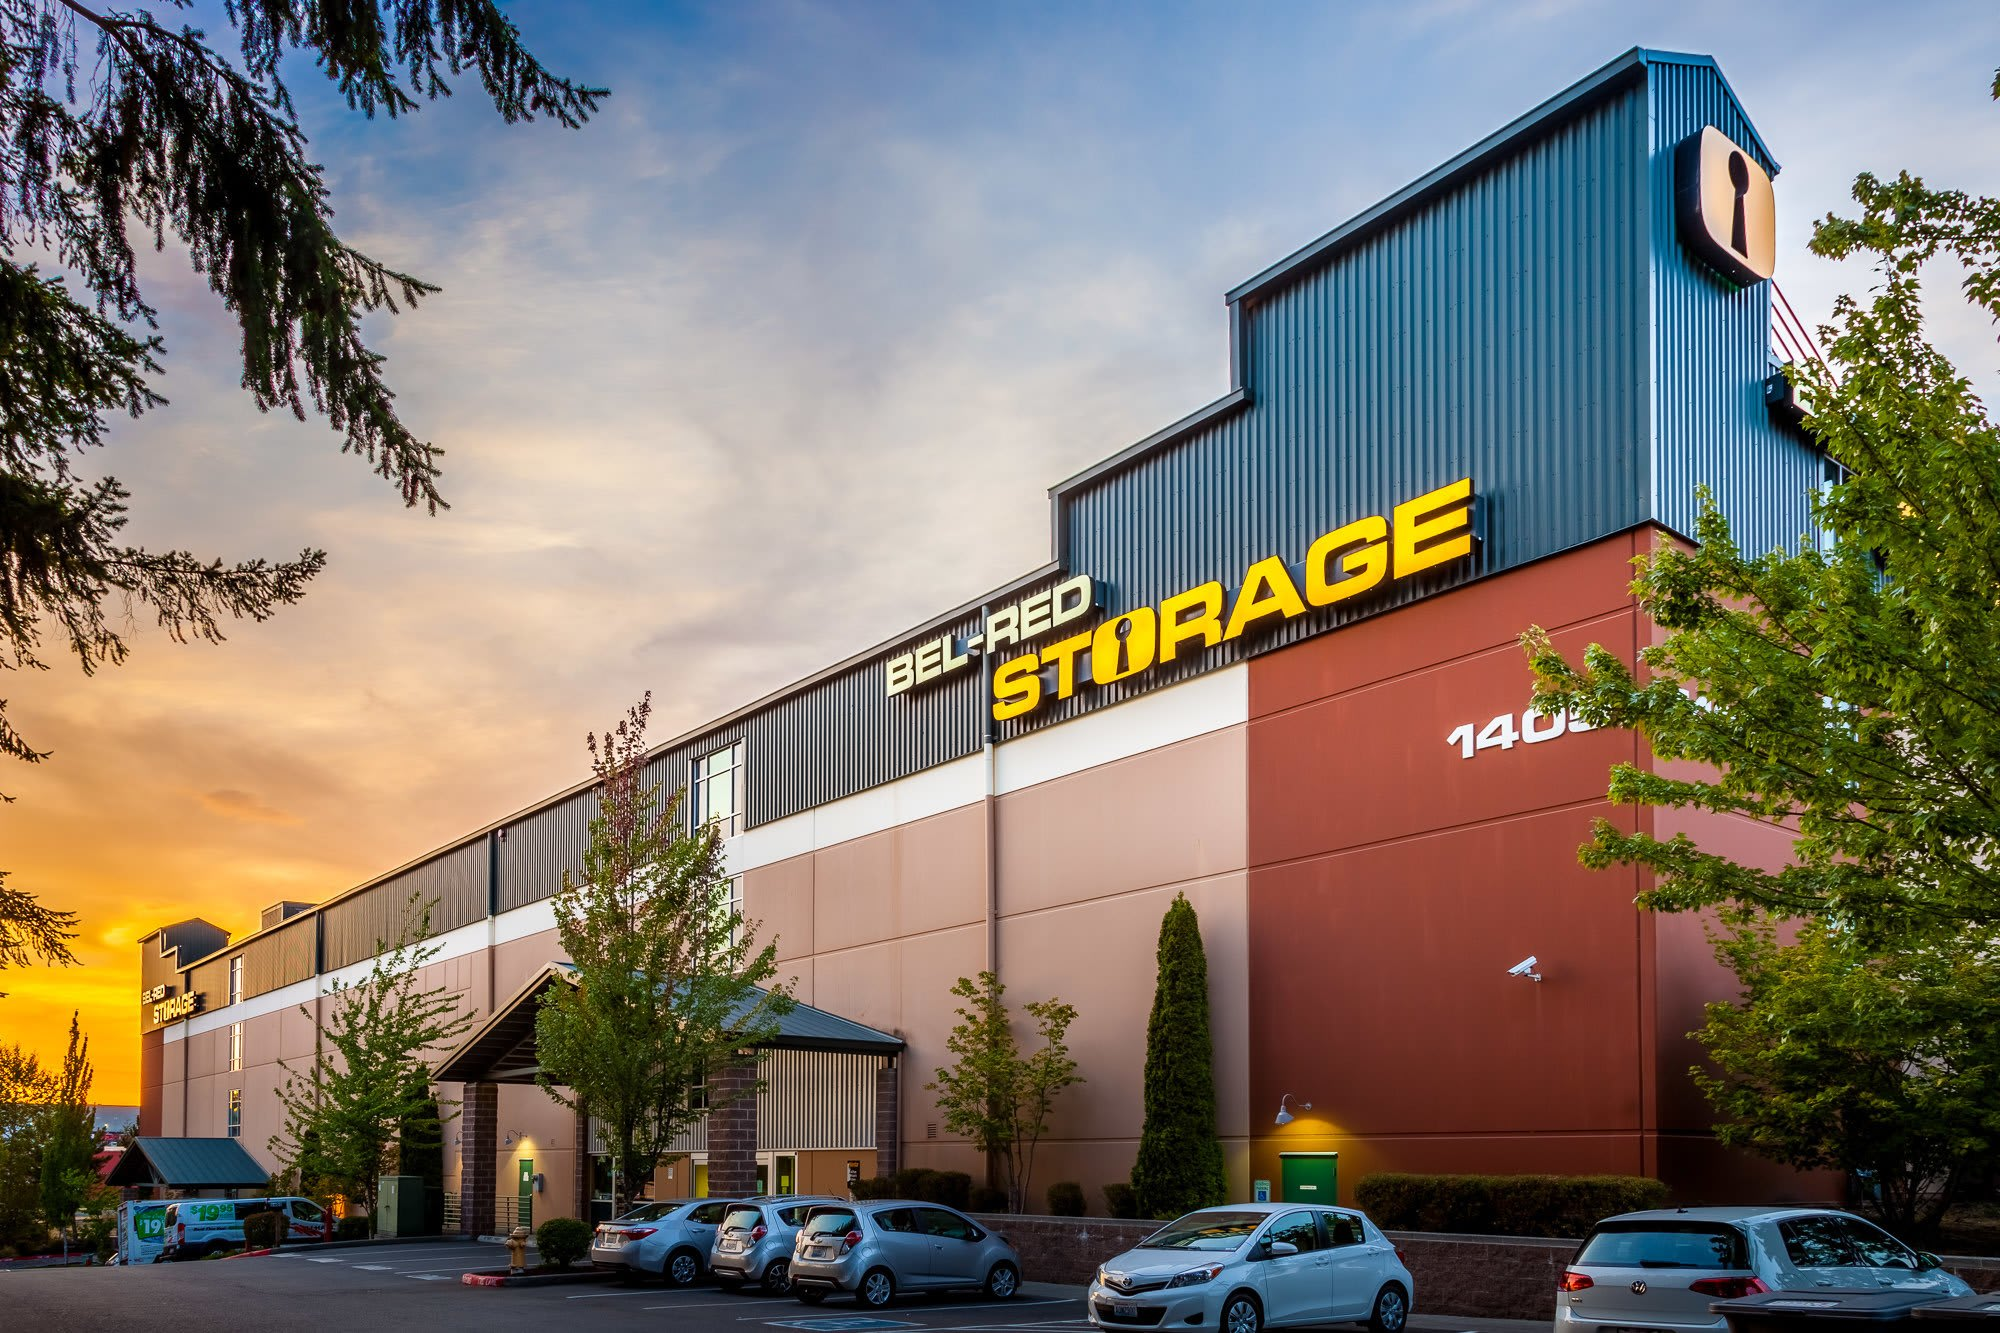 Exterior of self storage facility in Bellevue, Washington